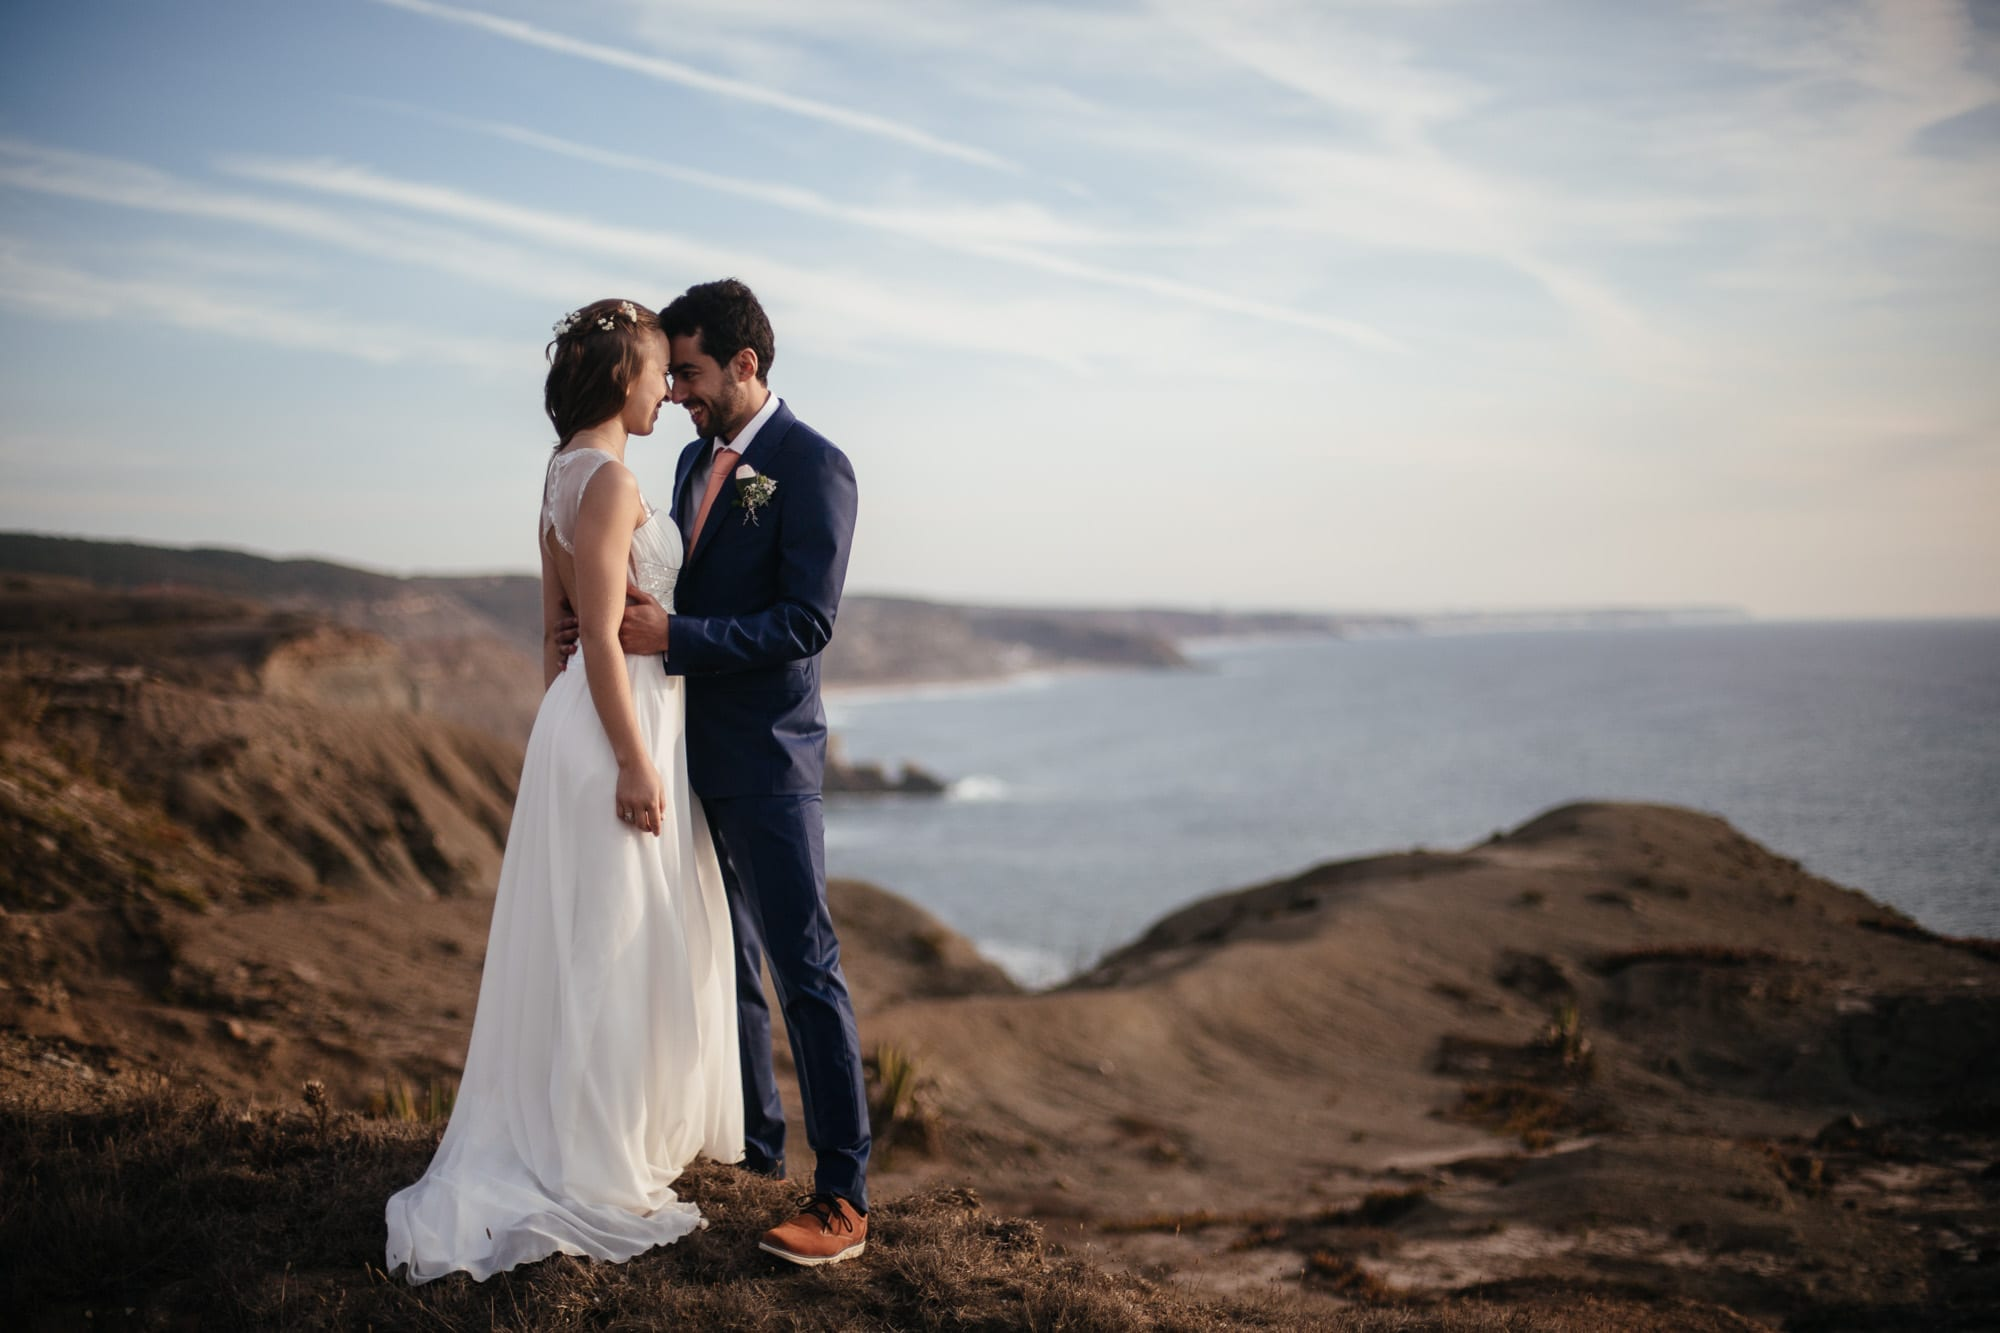 Patricia and Paulo – Beach Wedding in Portugal